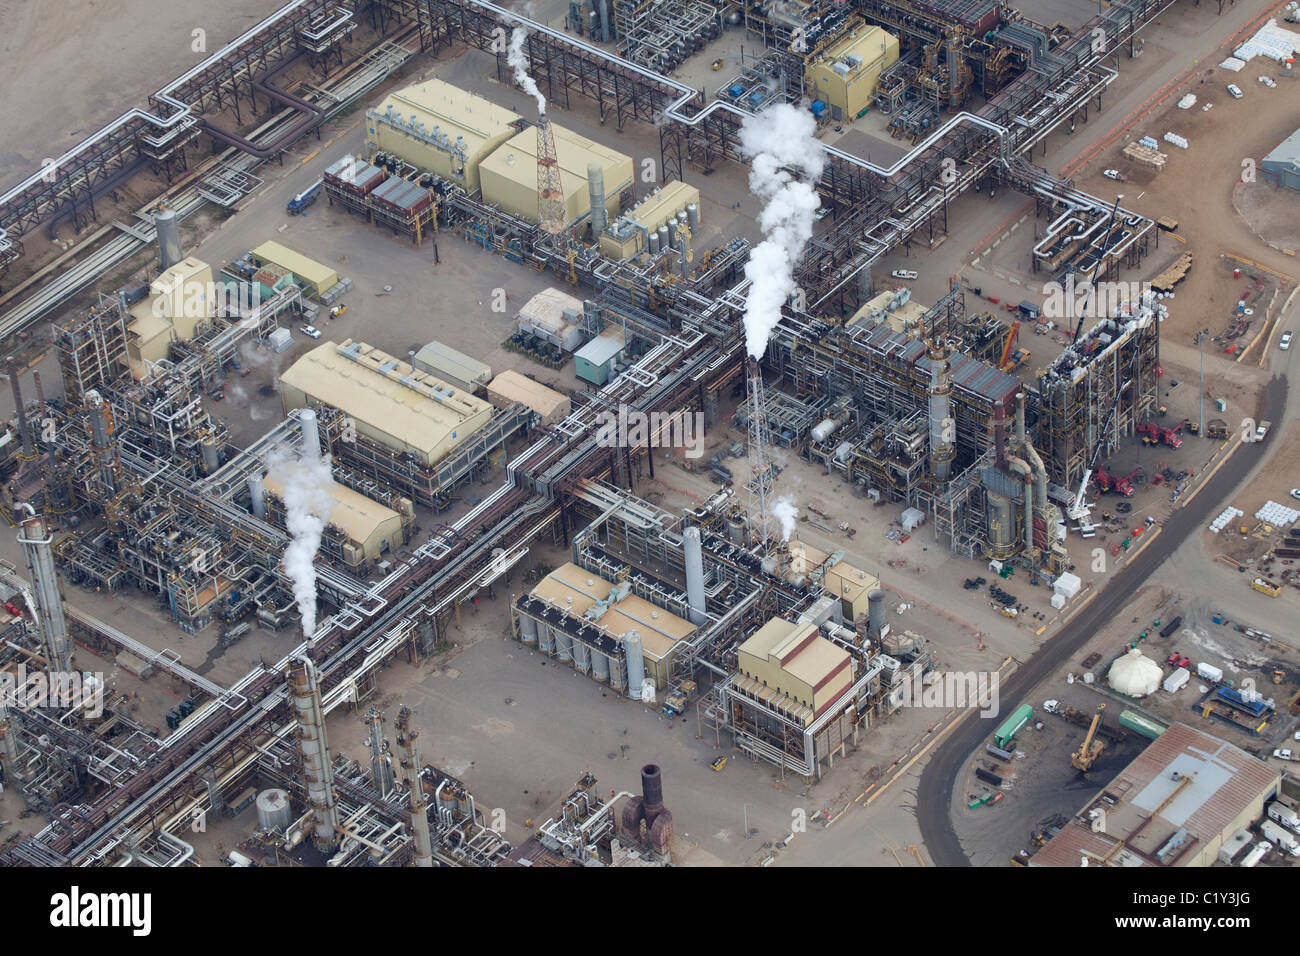 Aerial view of oil refinery with smoke stacks, detail